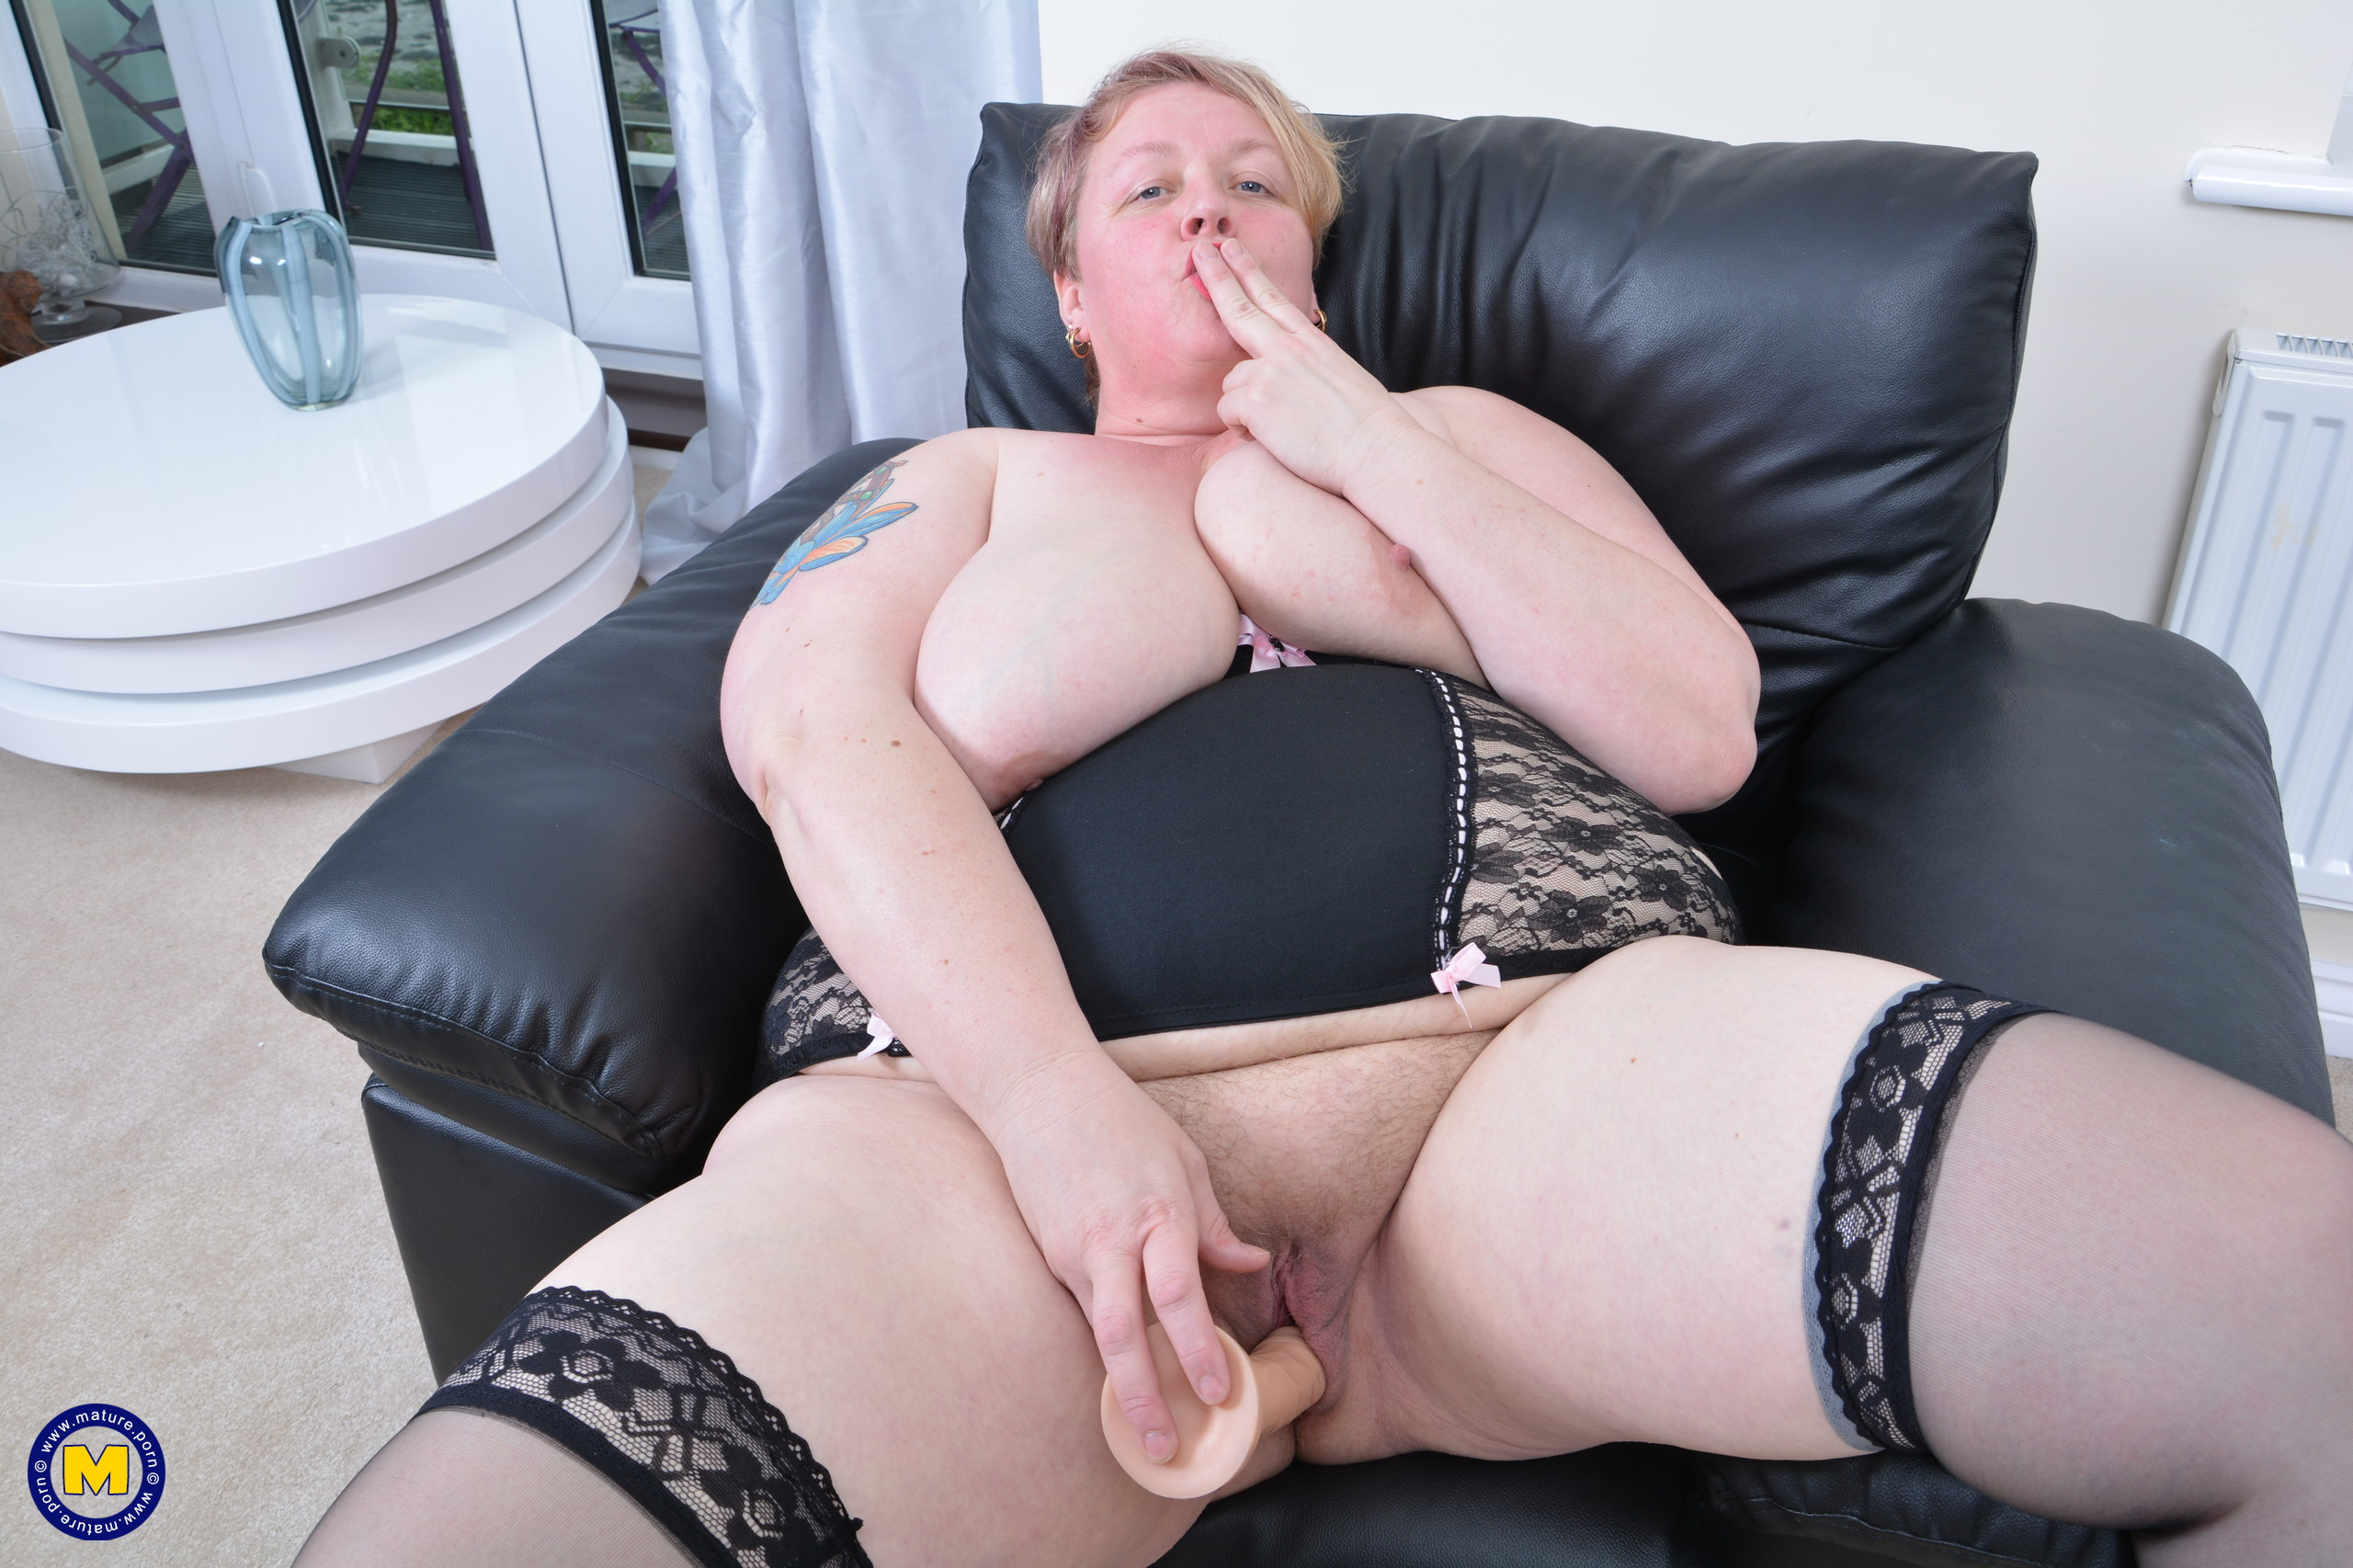 Brit BBW loves getting raw and mischievous